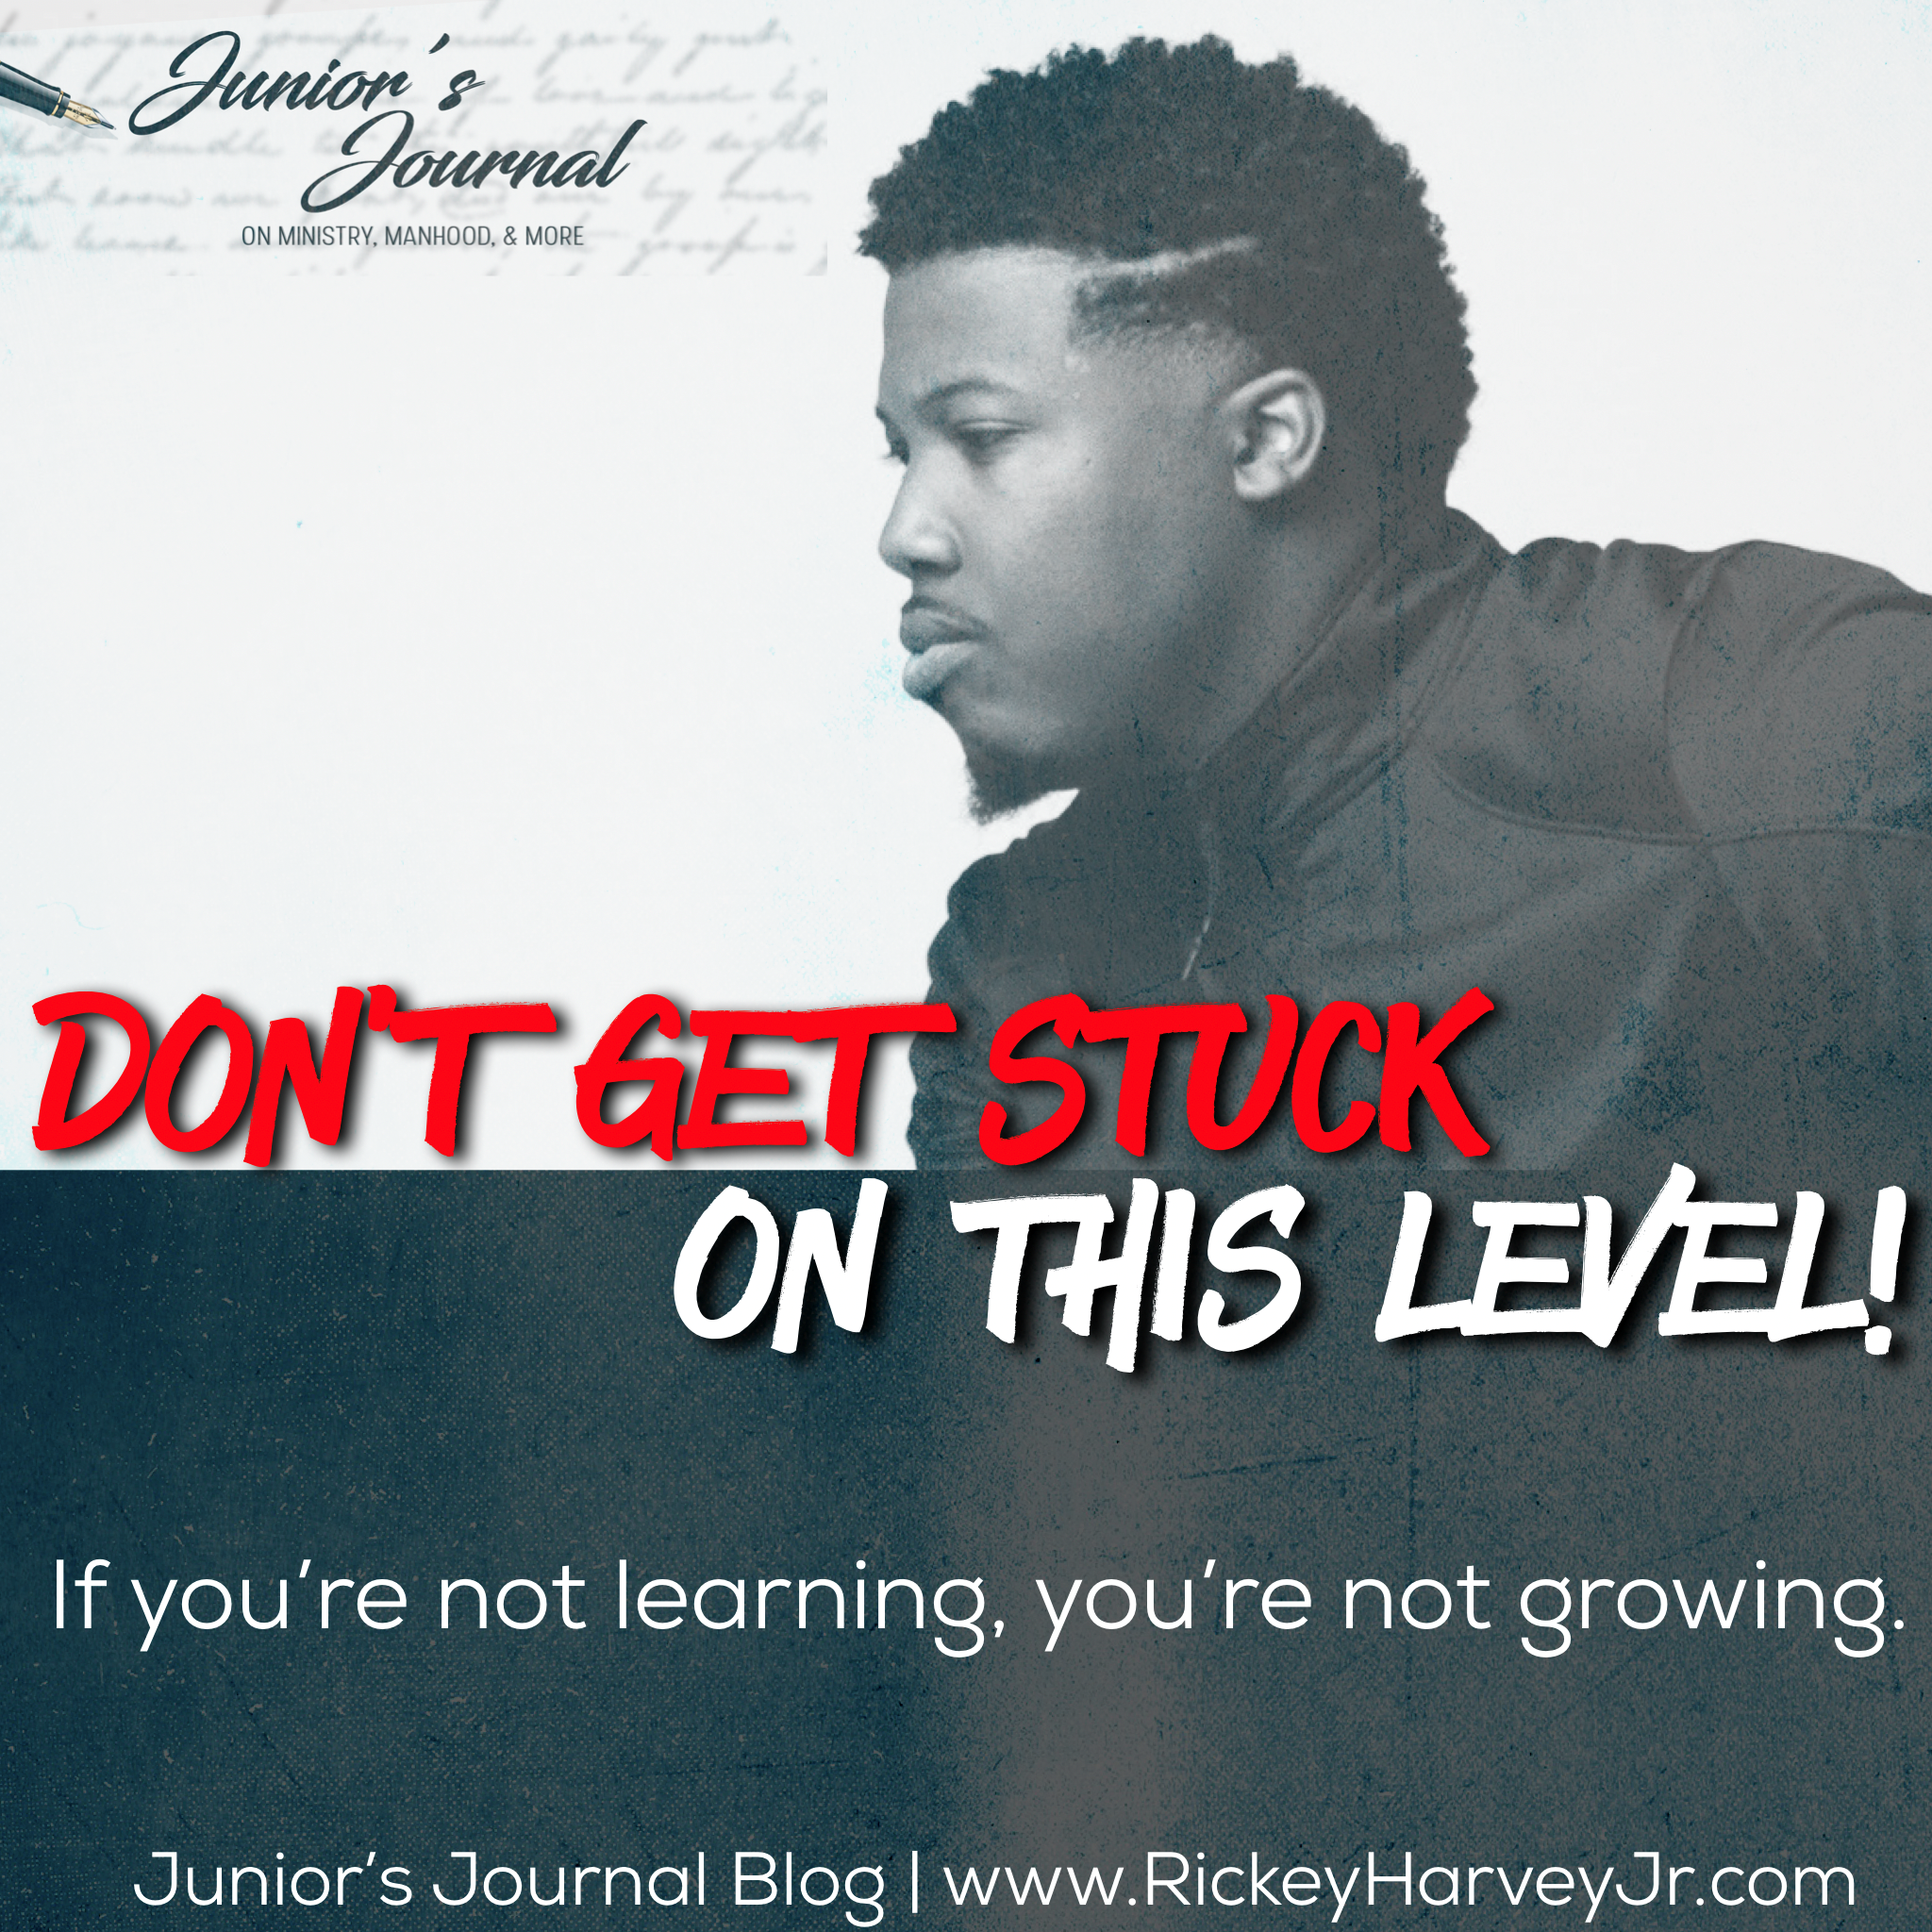 Junior's Journal Blog - Don't Get Stuck On This Level - Rickey Harvey, Jr.